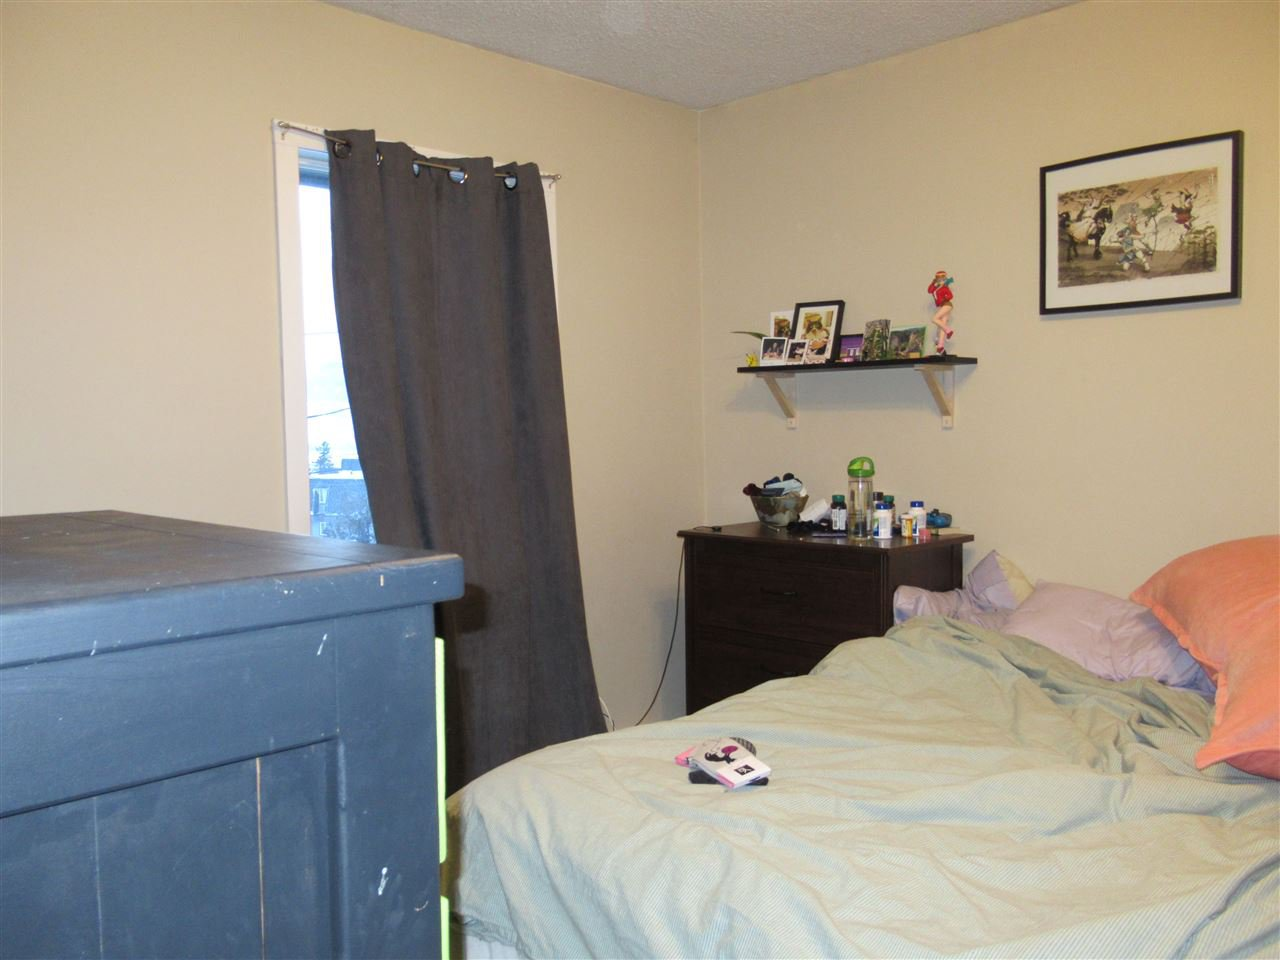 Photo 10: Photos: 56 605 CARSON Drive in Williams Lake: Williams Lake - City Townhouse for sale (Williams Lake (Zone 27))  : MLS®# R2463501